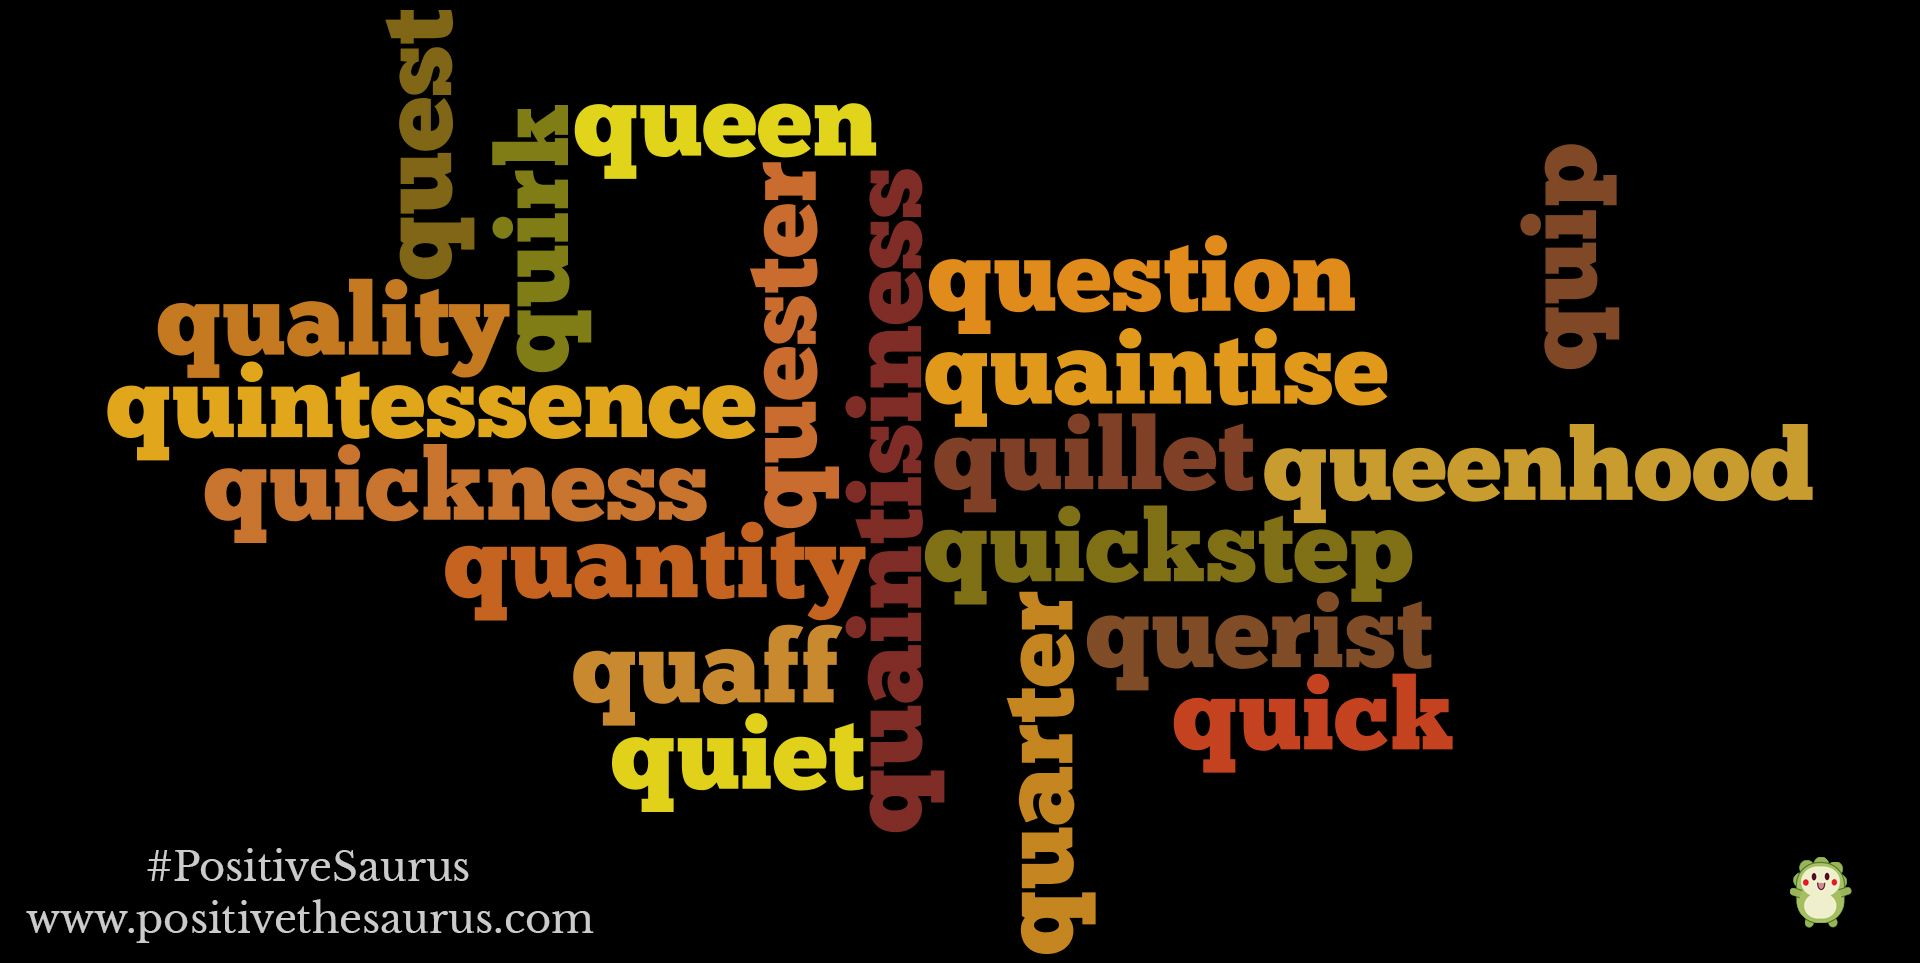 Positive nouns starting with q www.positivethesaurus.com #positivesaurus  #positivenouns #nouns